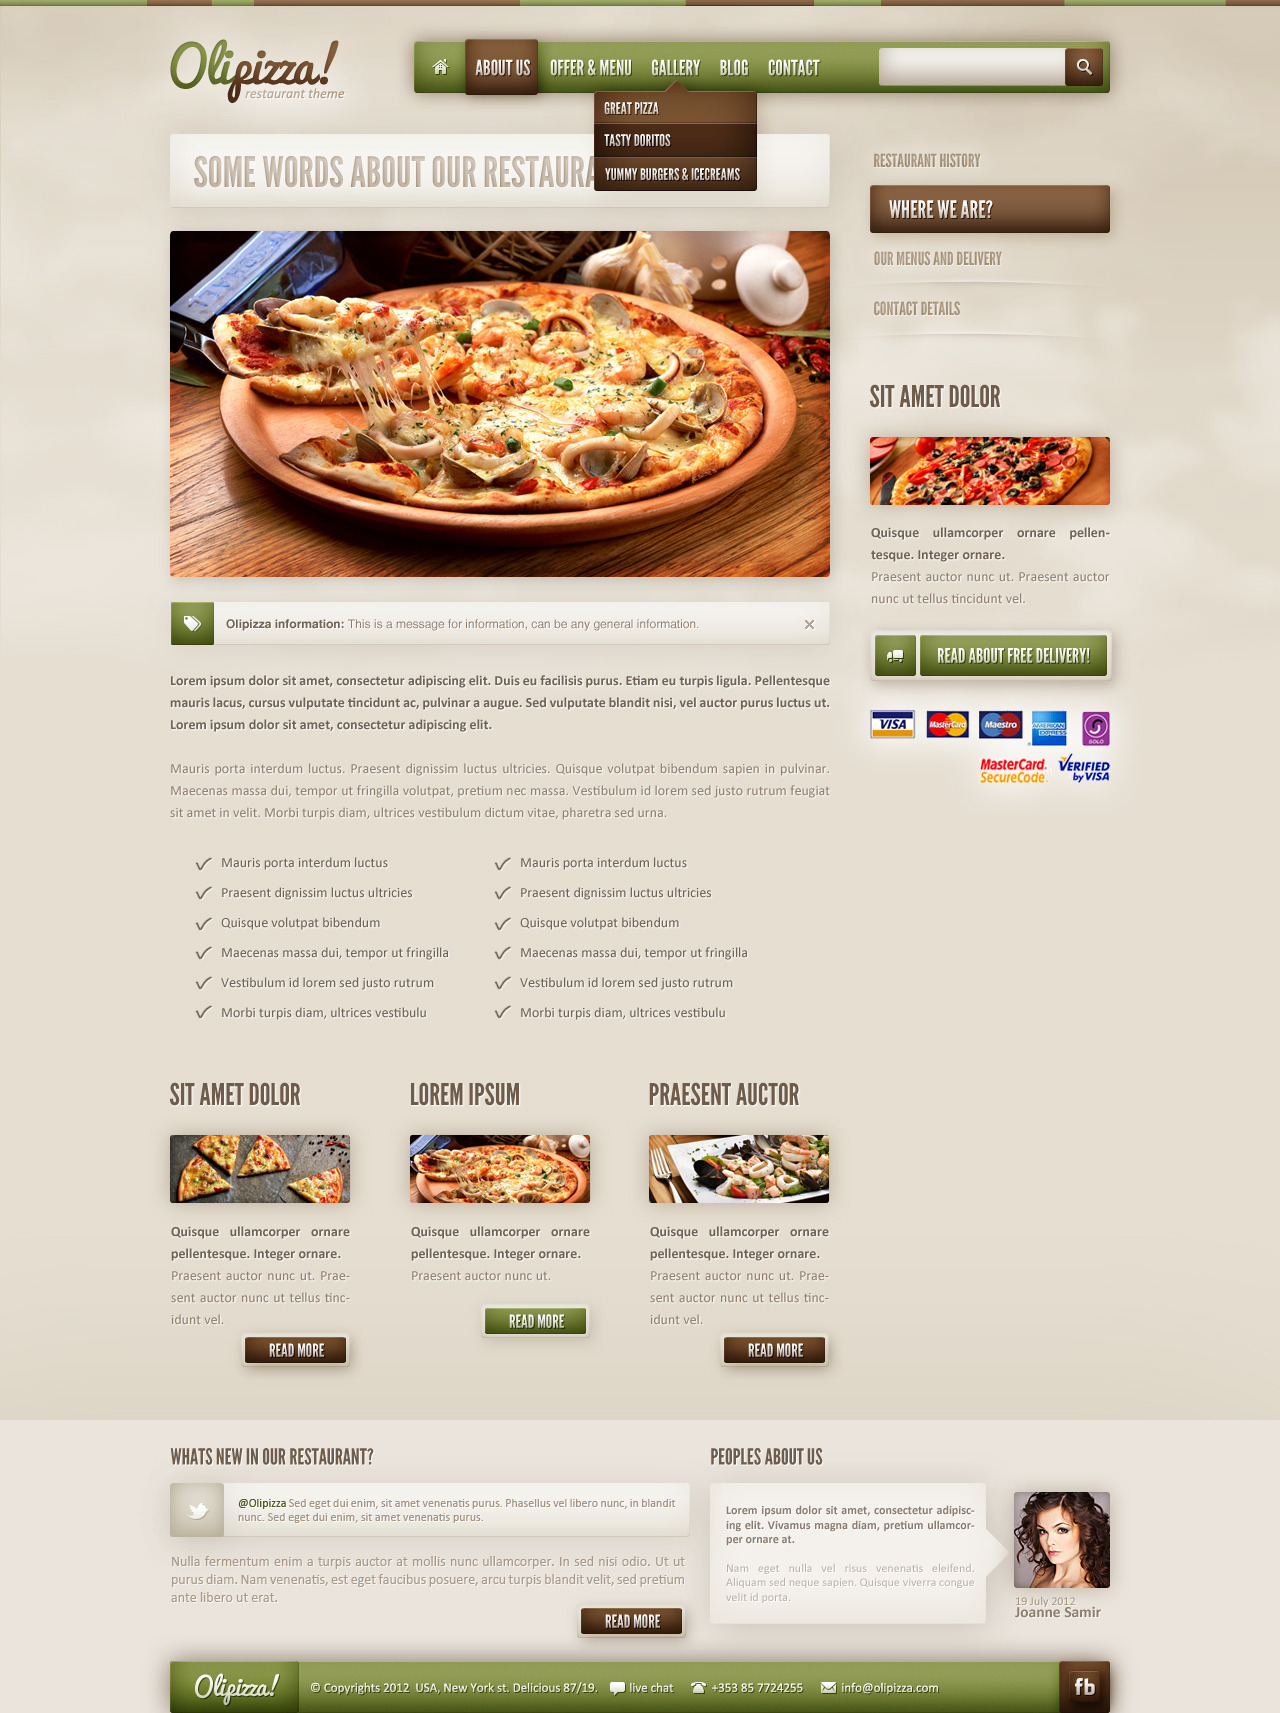 Olipizza - Really tasty PSD theme in 4 colors